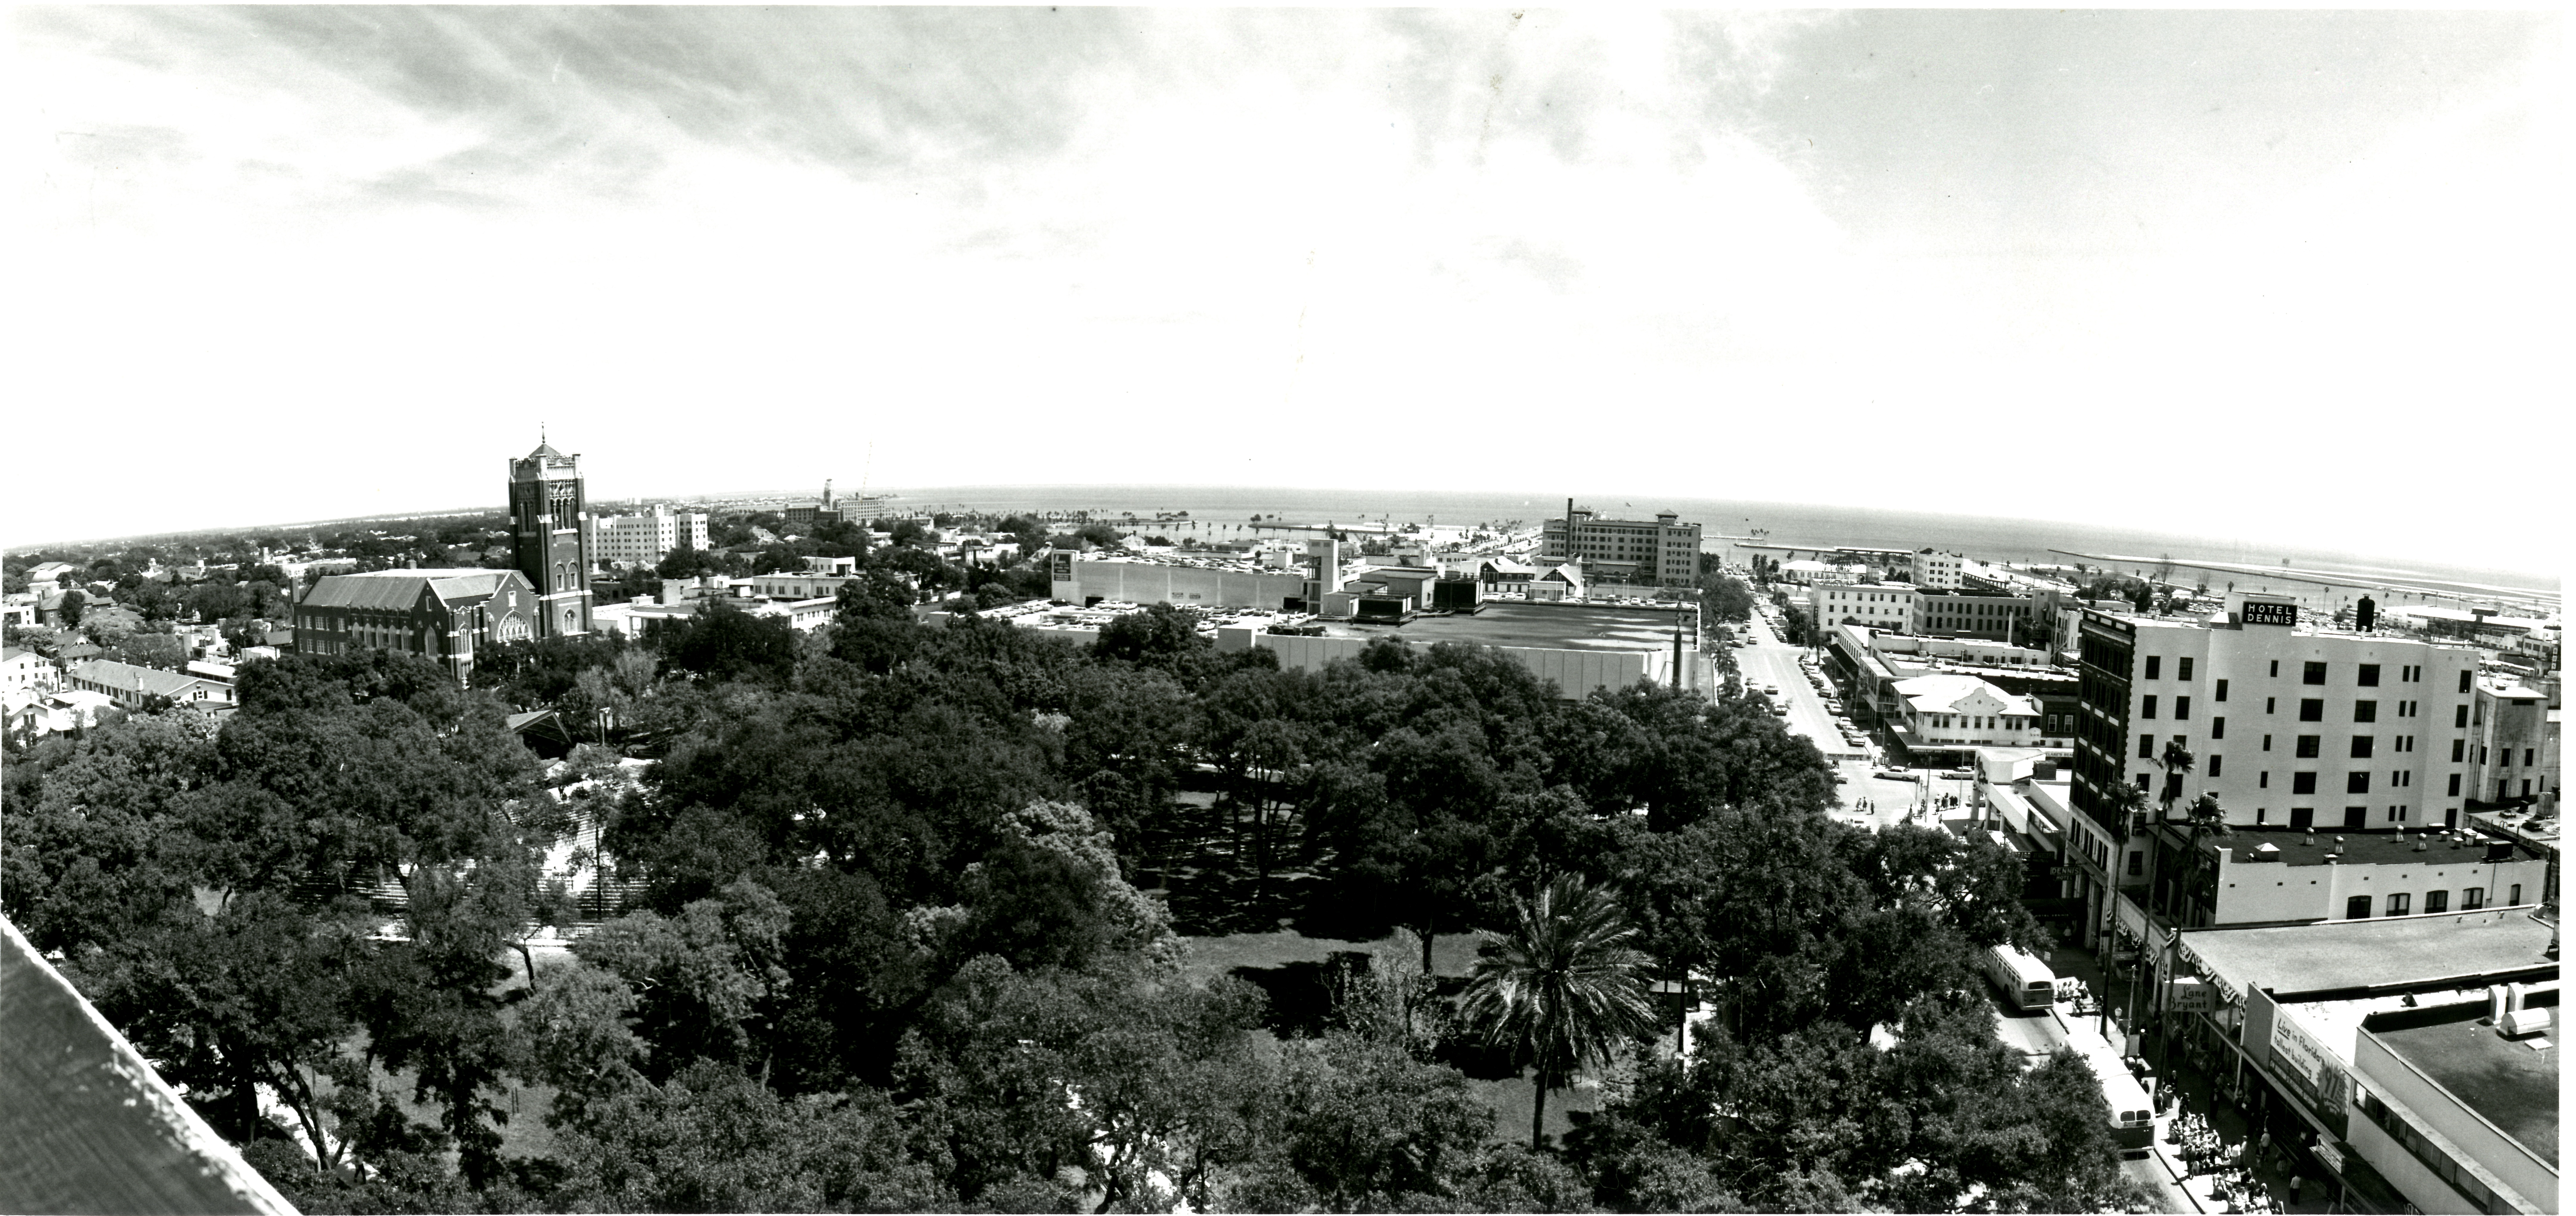 Aerial view of Williams Park in downtown St. Petersburg, Florida, circa 1965.